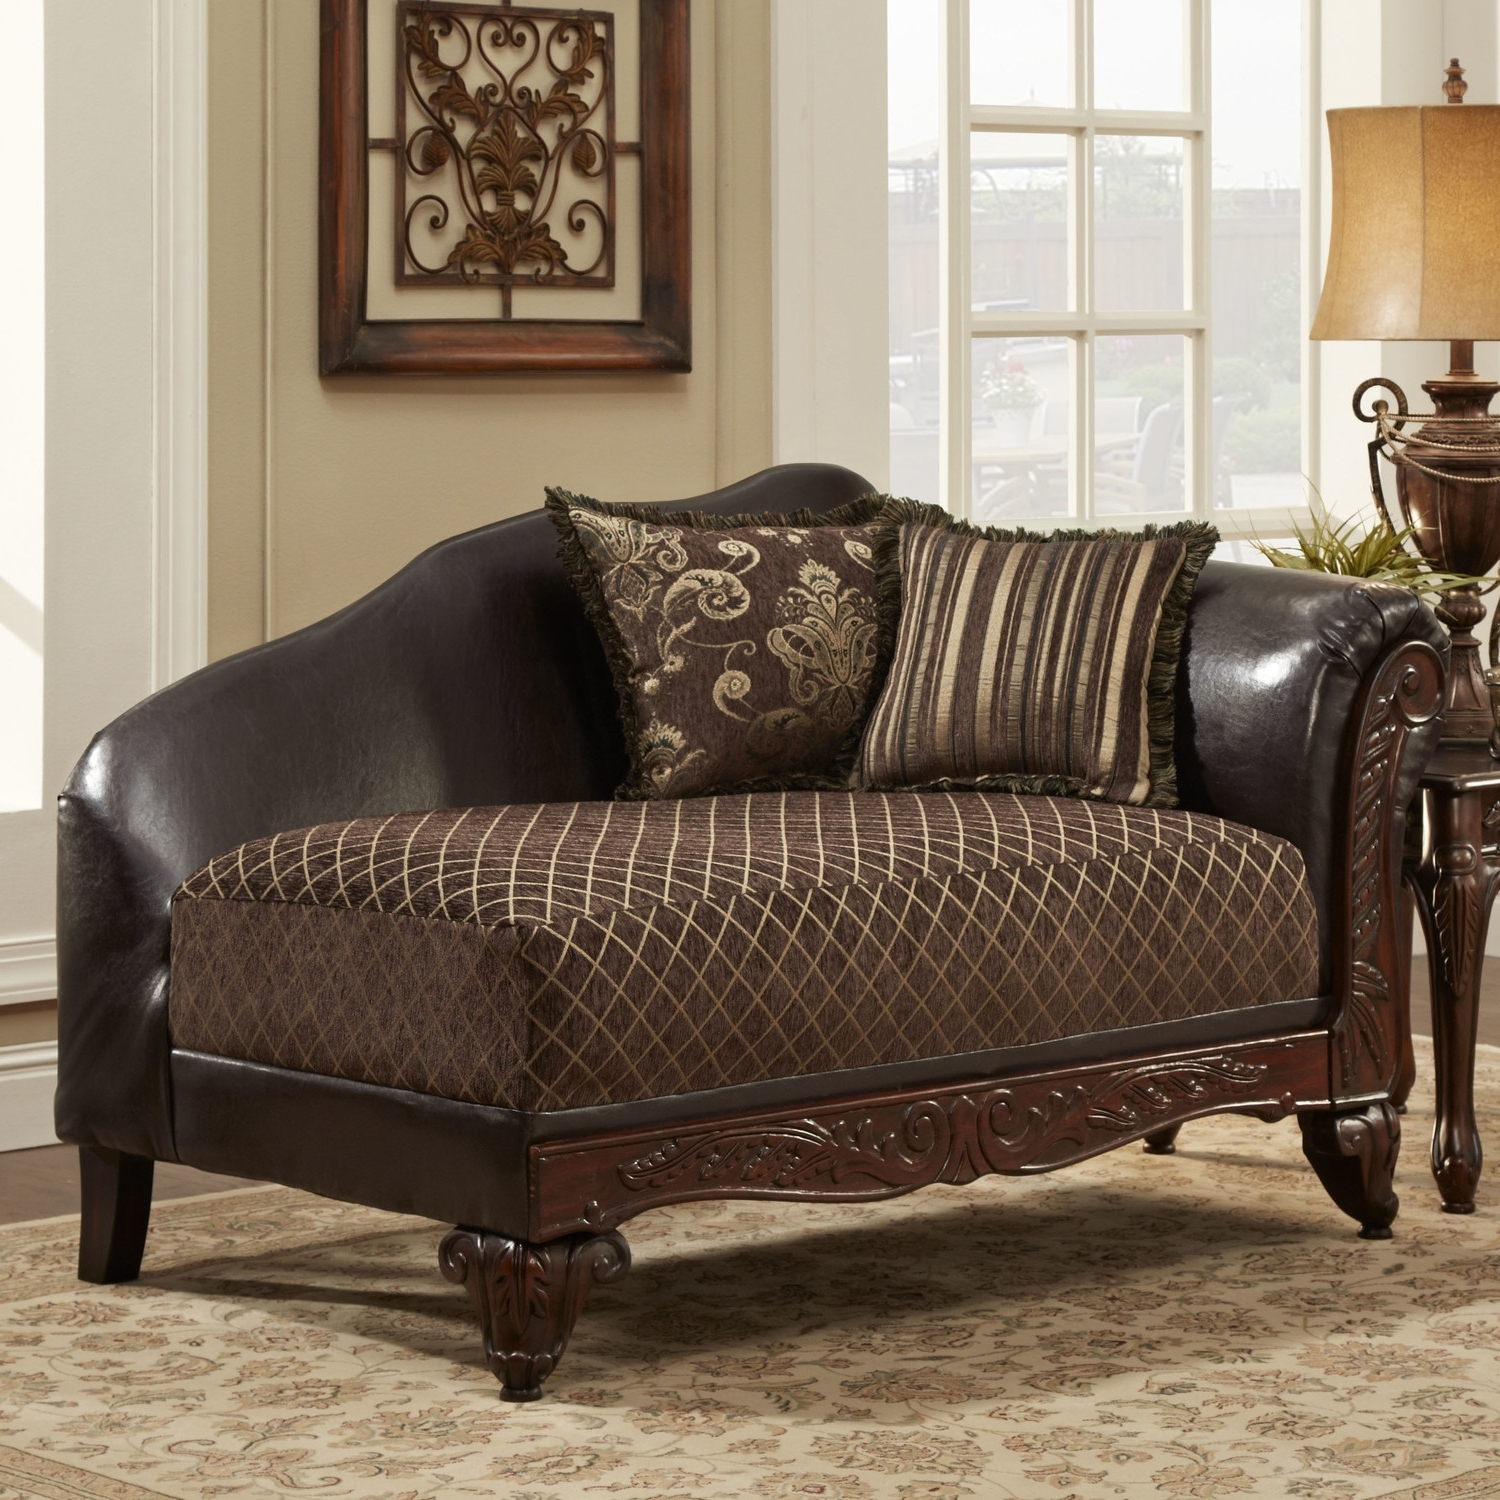 Wonderful Brown Leather Chaise Lounge With Traditional Chaise With Favorite Leather Chaise Lounge Sofas (View 3 of 15)